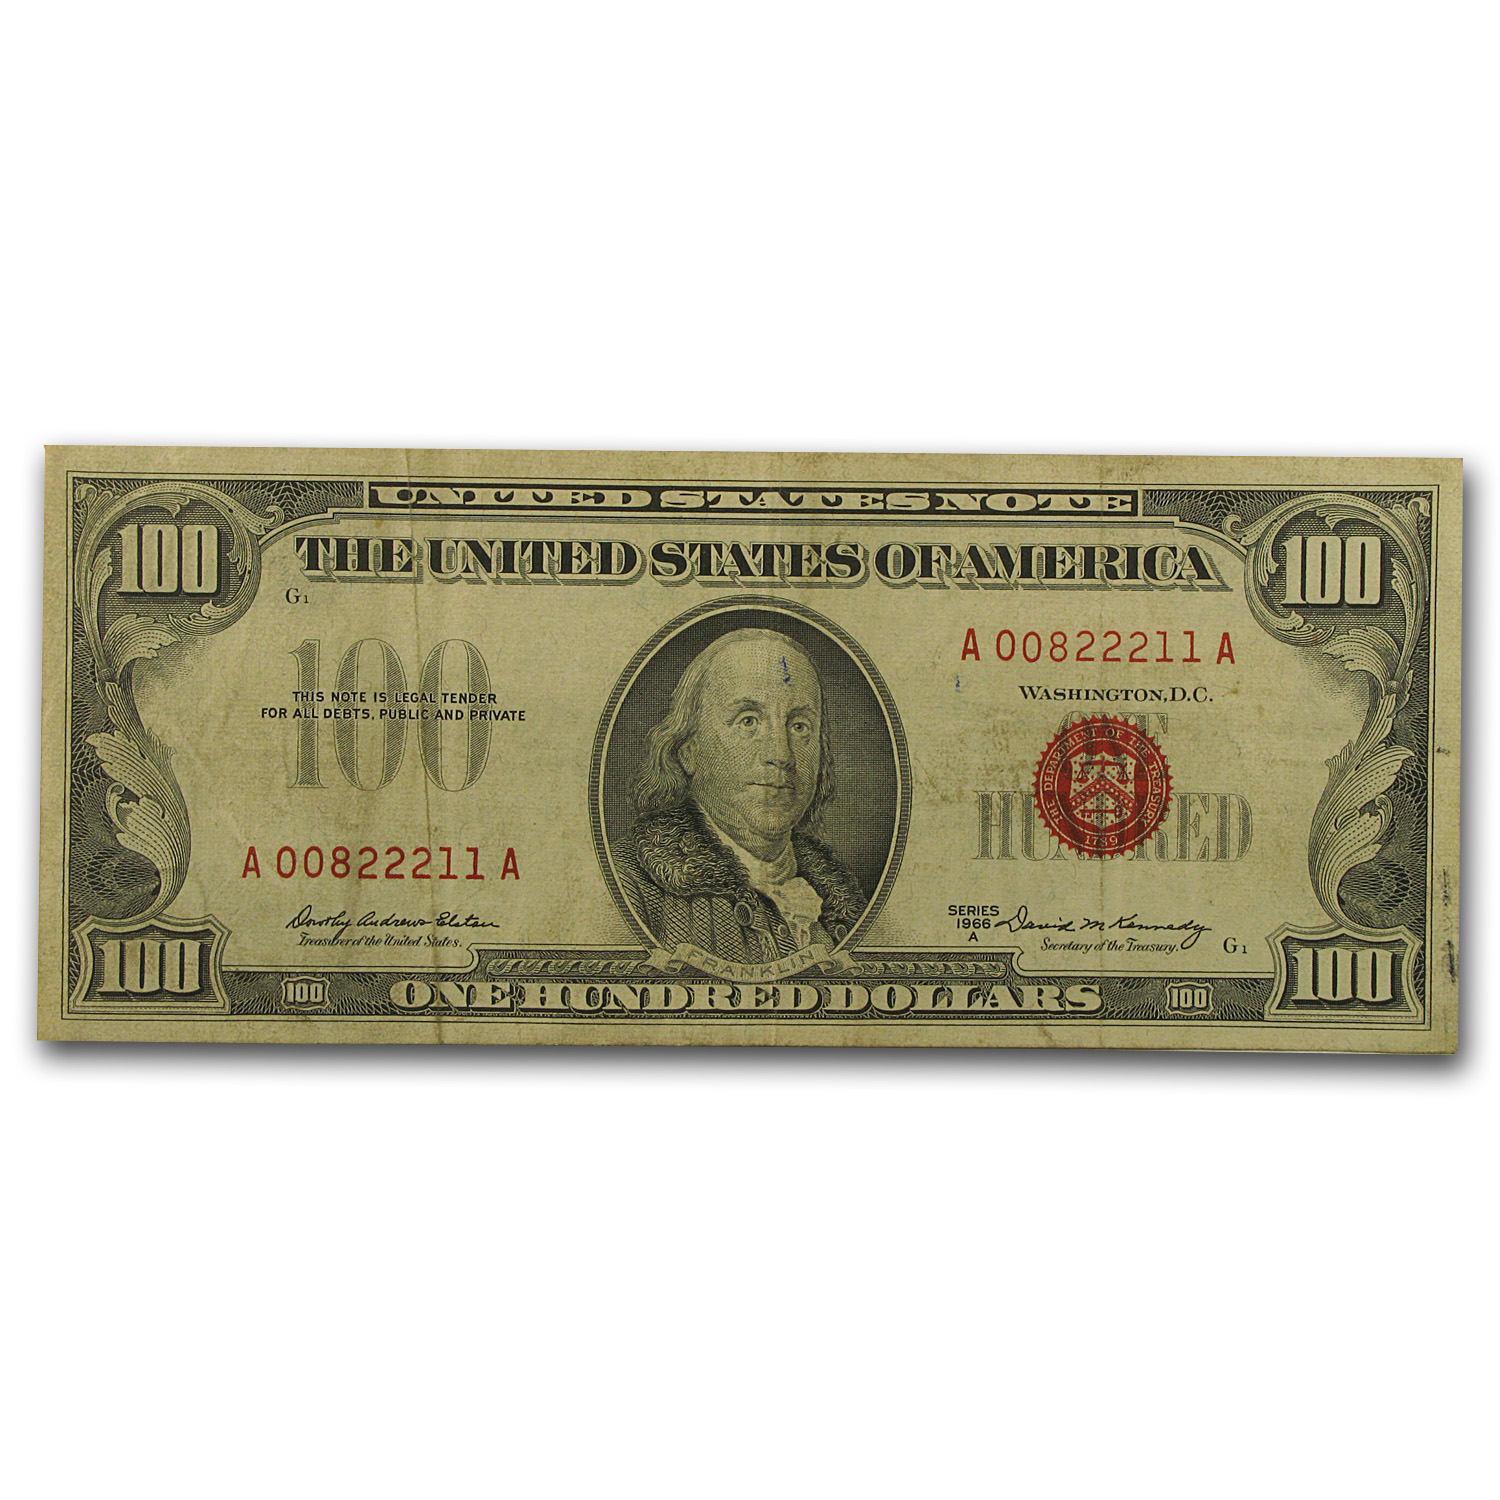 1966-A $100 U. S. Note (Red Seal) Fine